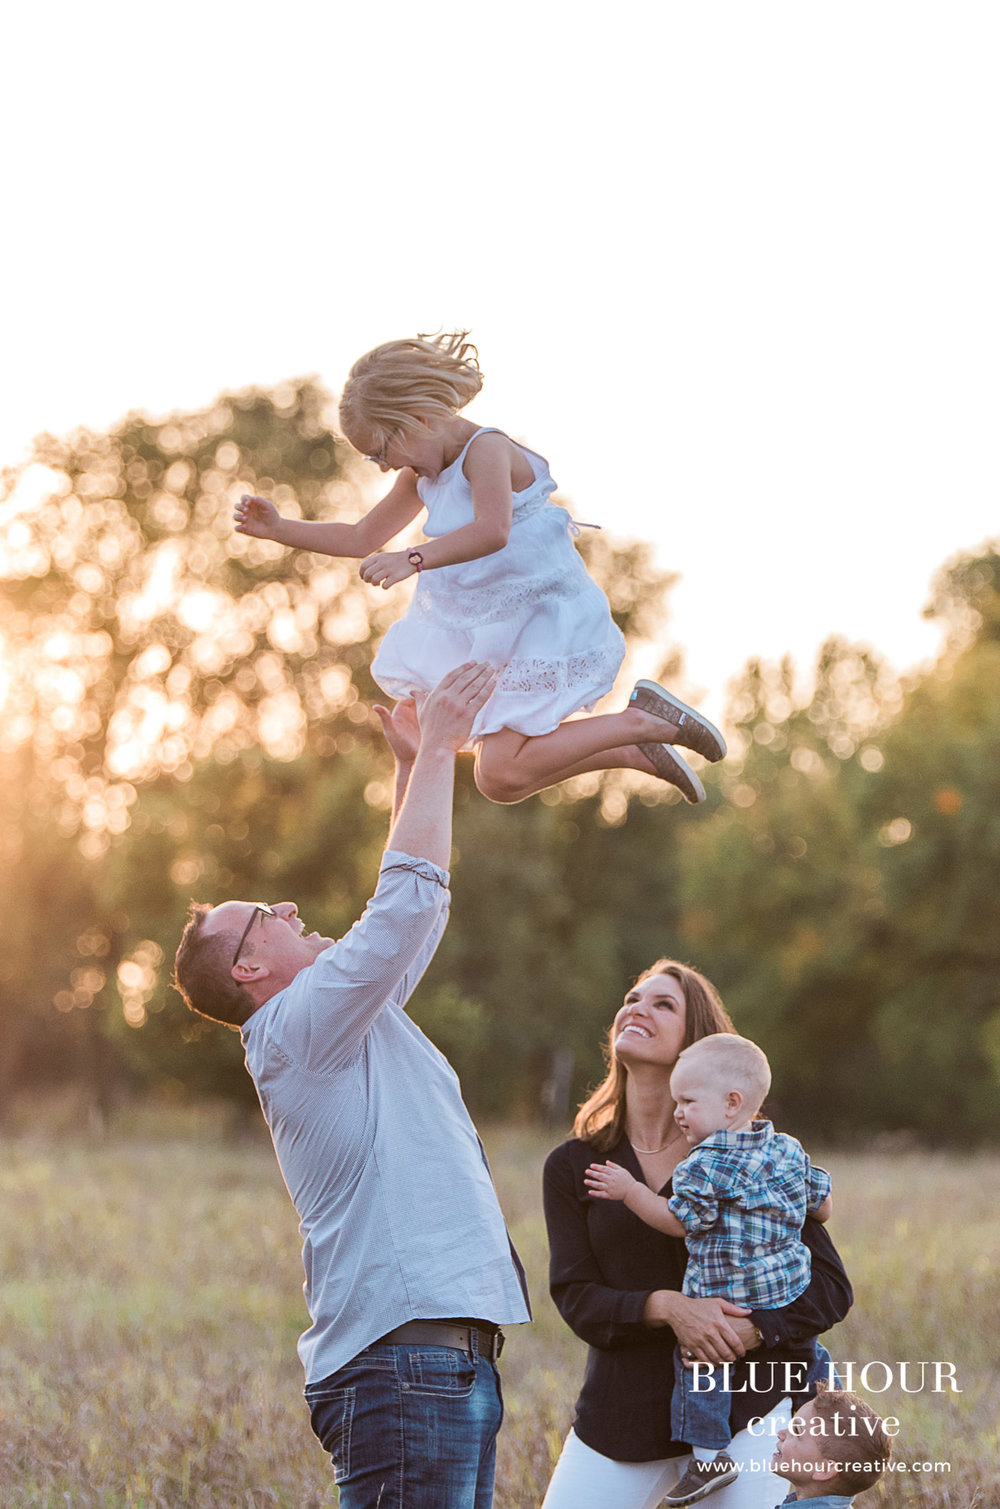 bluehourcreative-family-fun-golden-hour-session-13.jpg